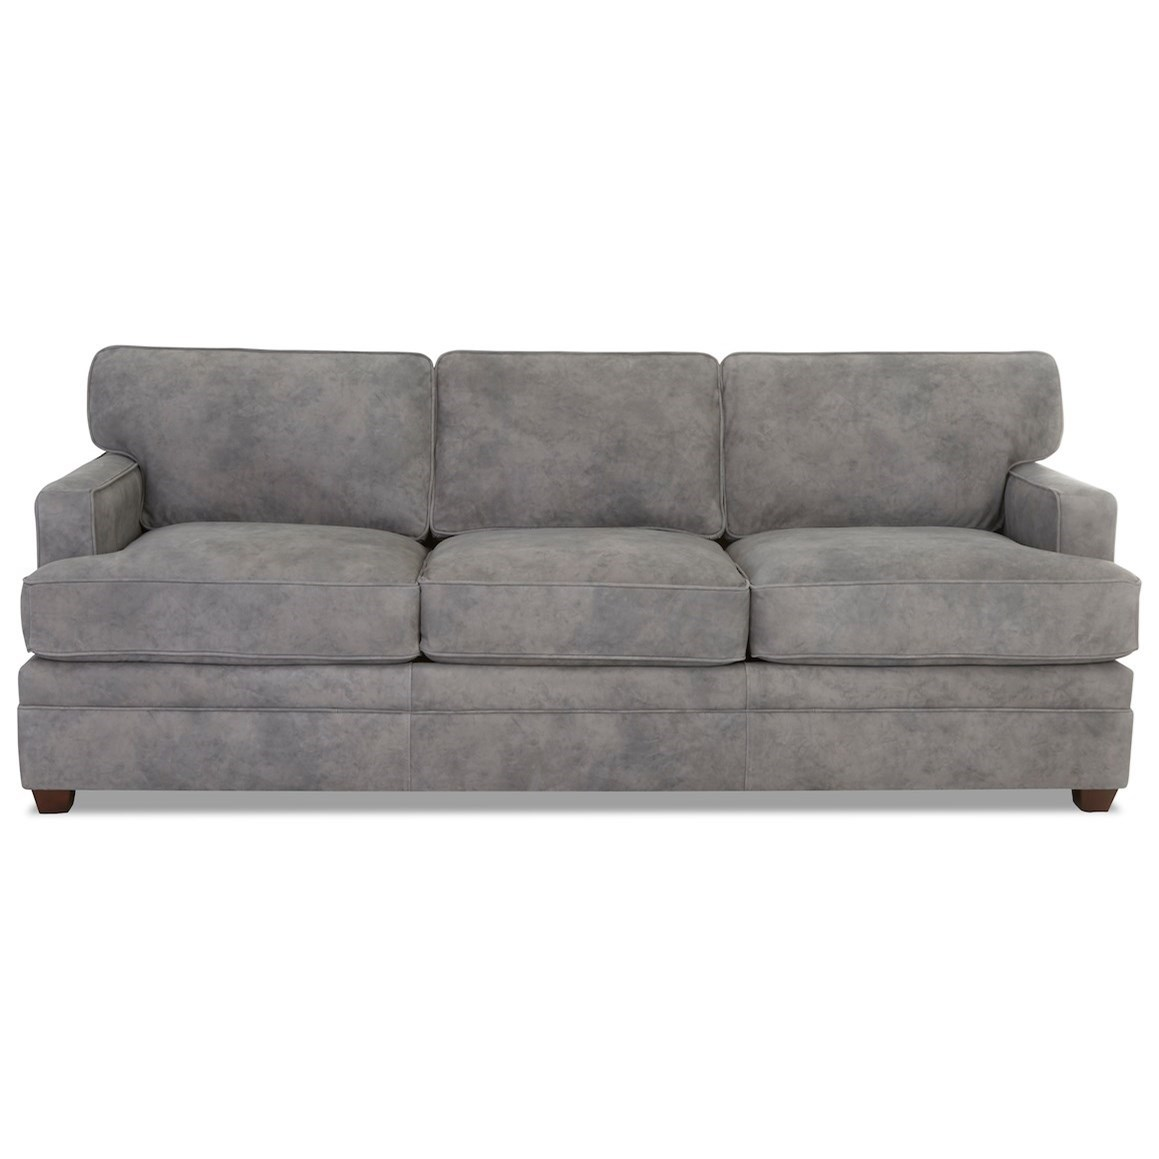 Living Your Way Sofa by Klaussner at Pilgrim Furniture City